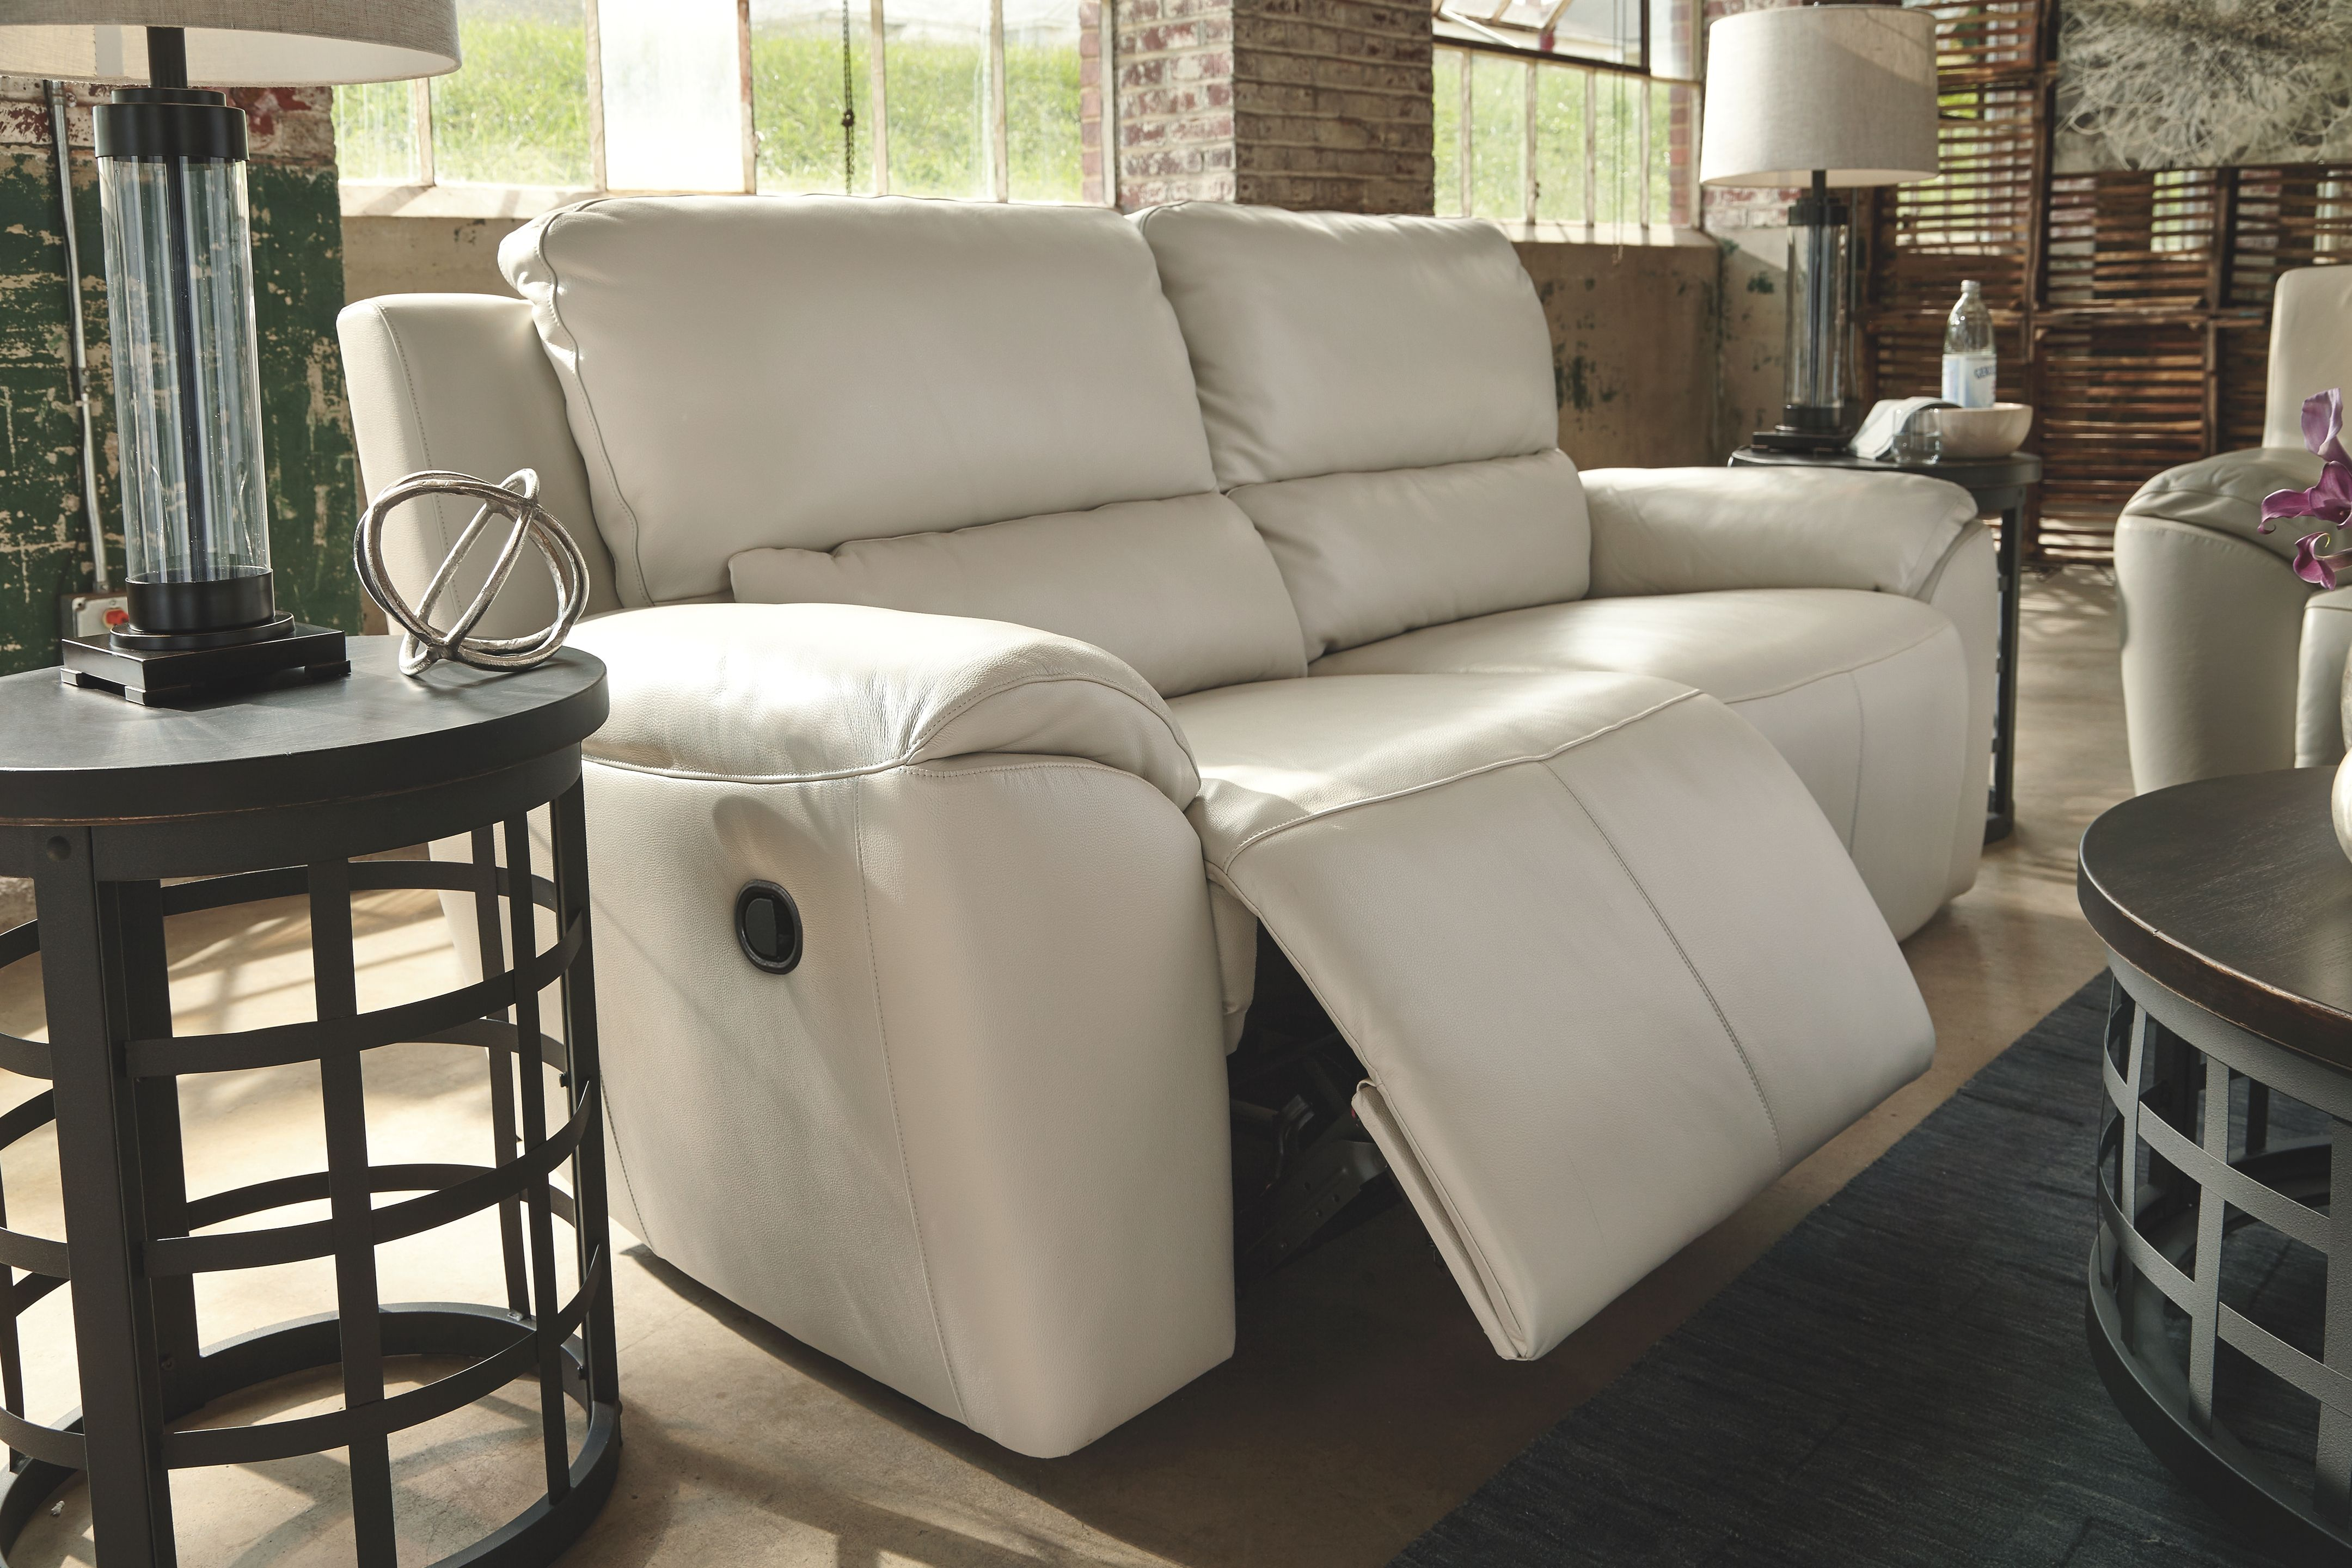 Valeton Reclining Sofa Cream Leather Products Recliner